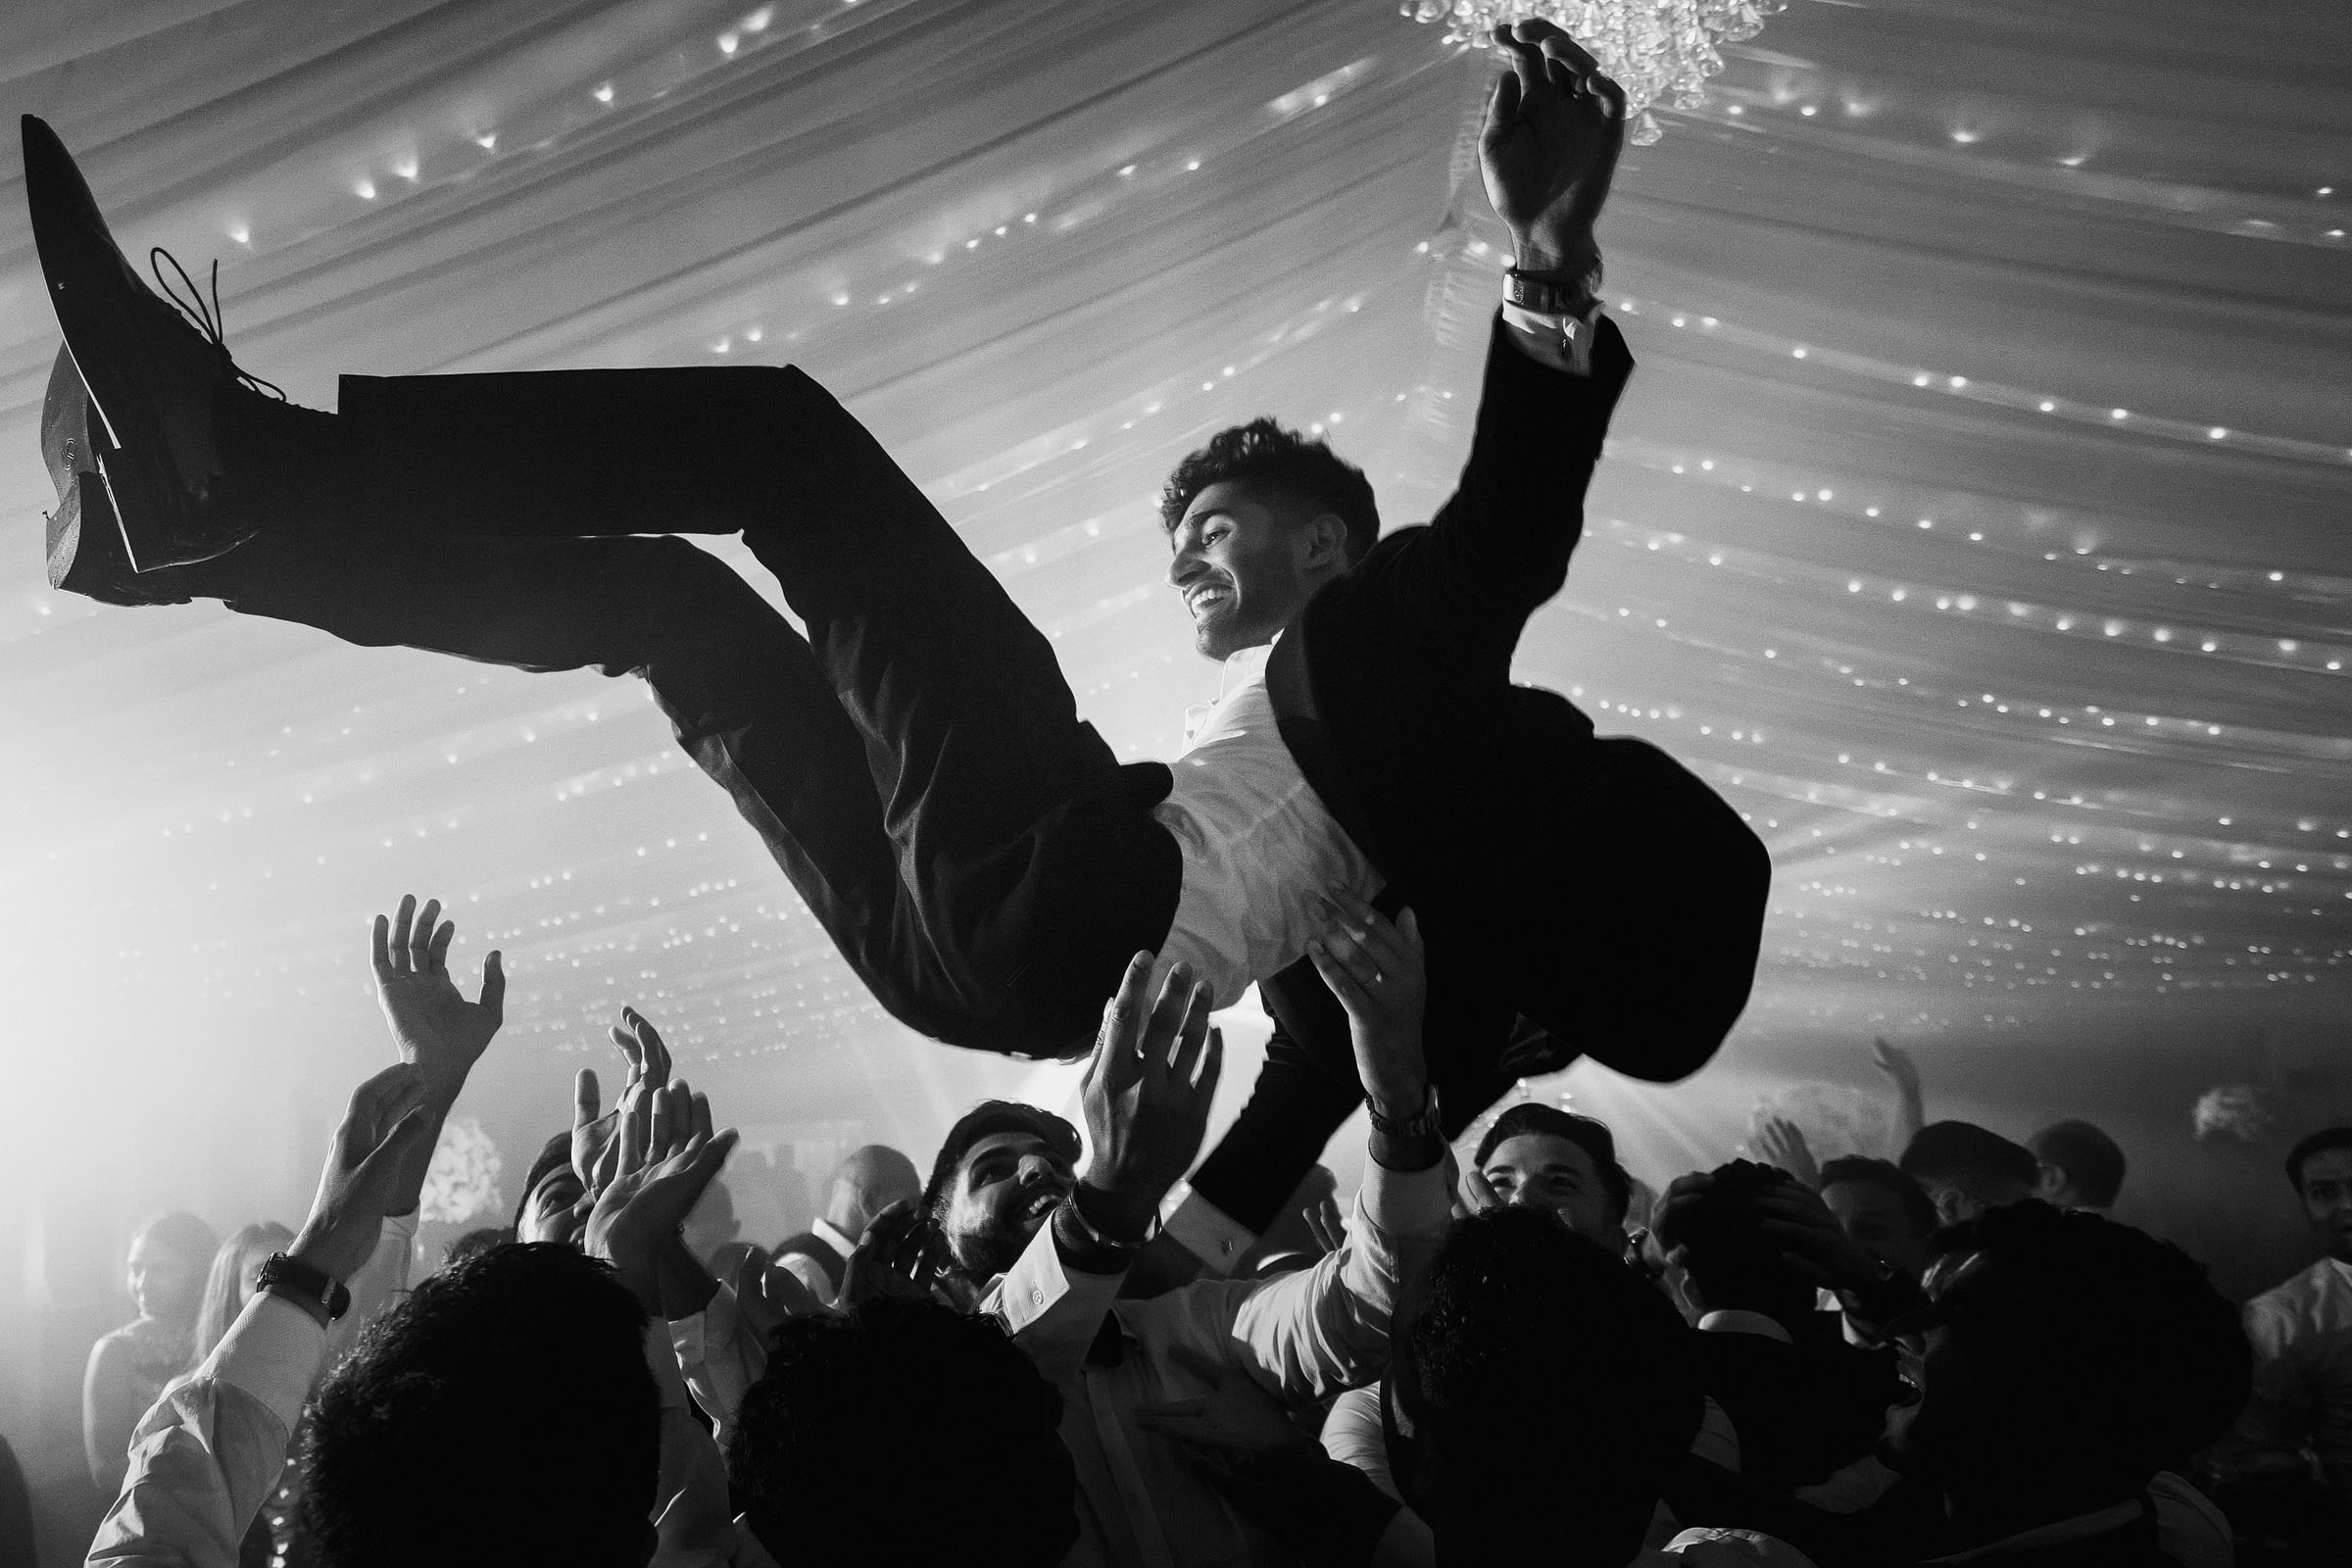 Groom at top of mosh pit -photo by F5 Photography